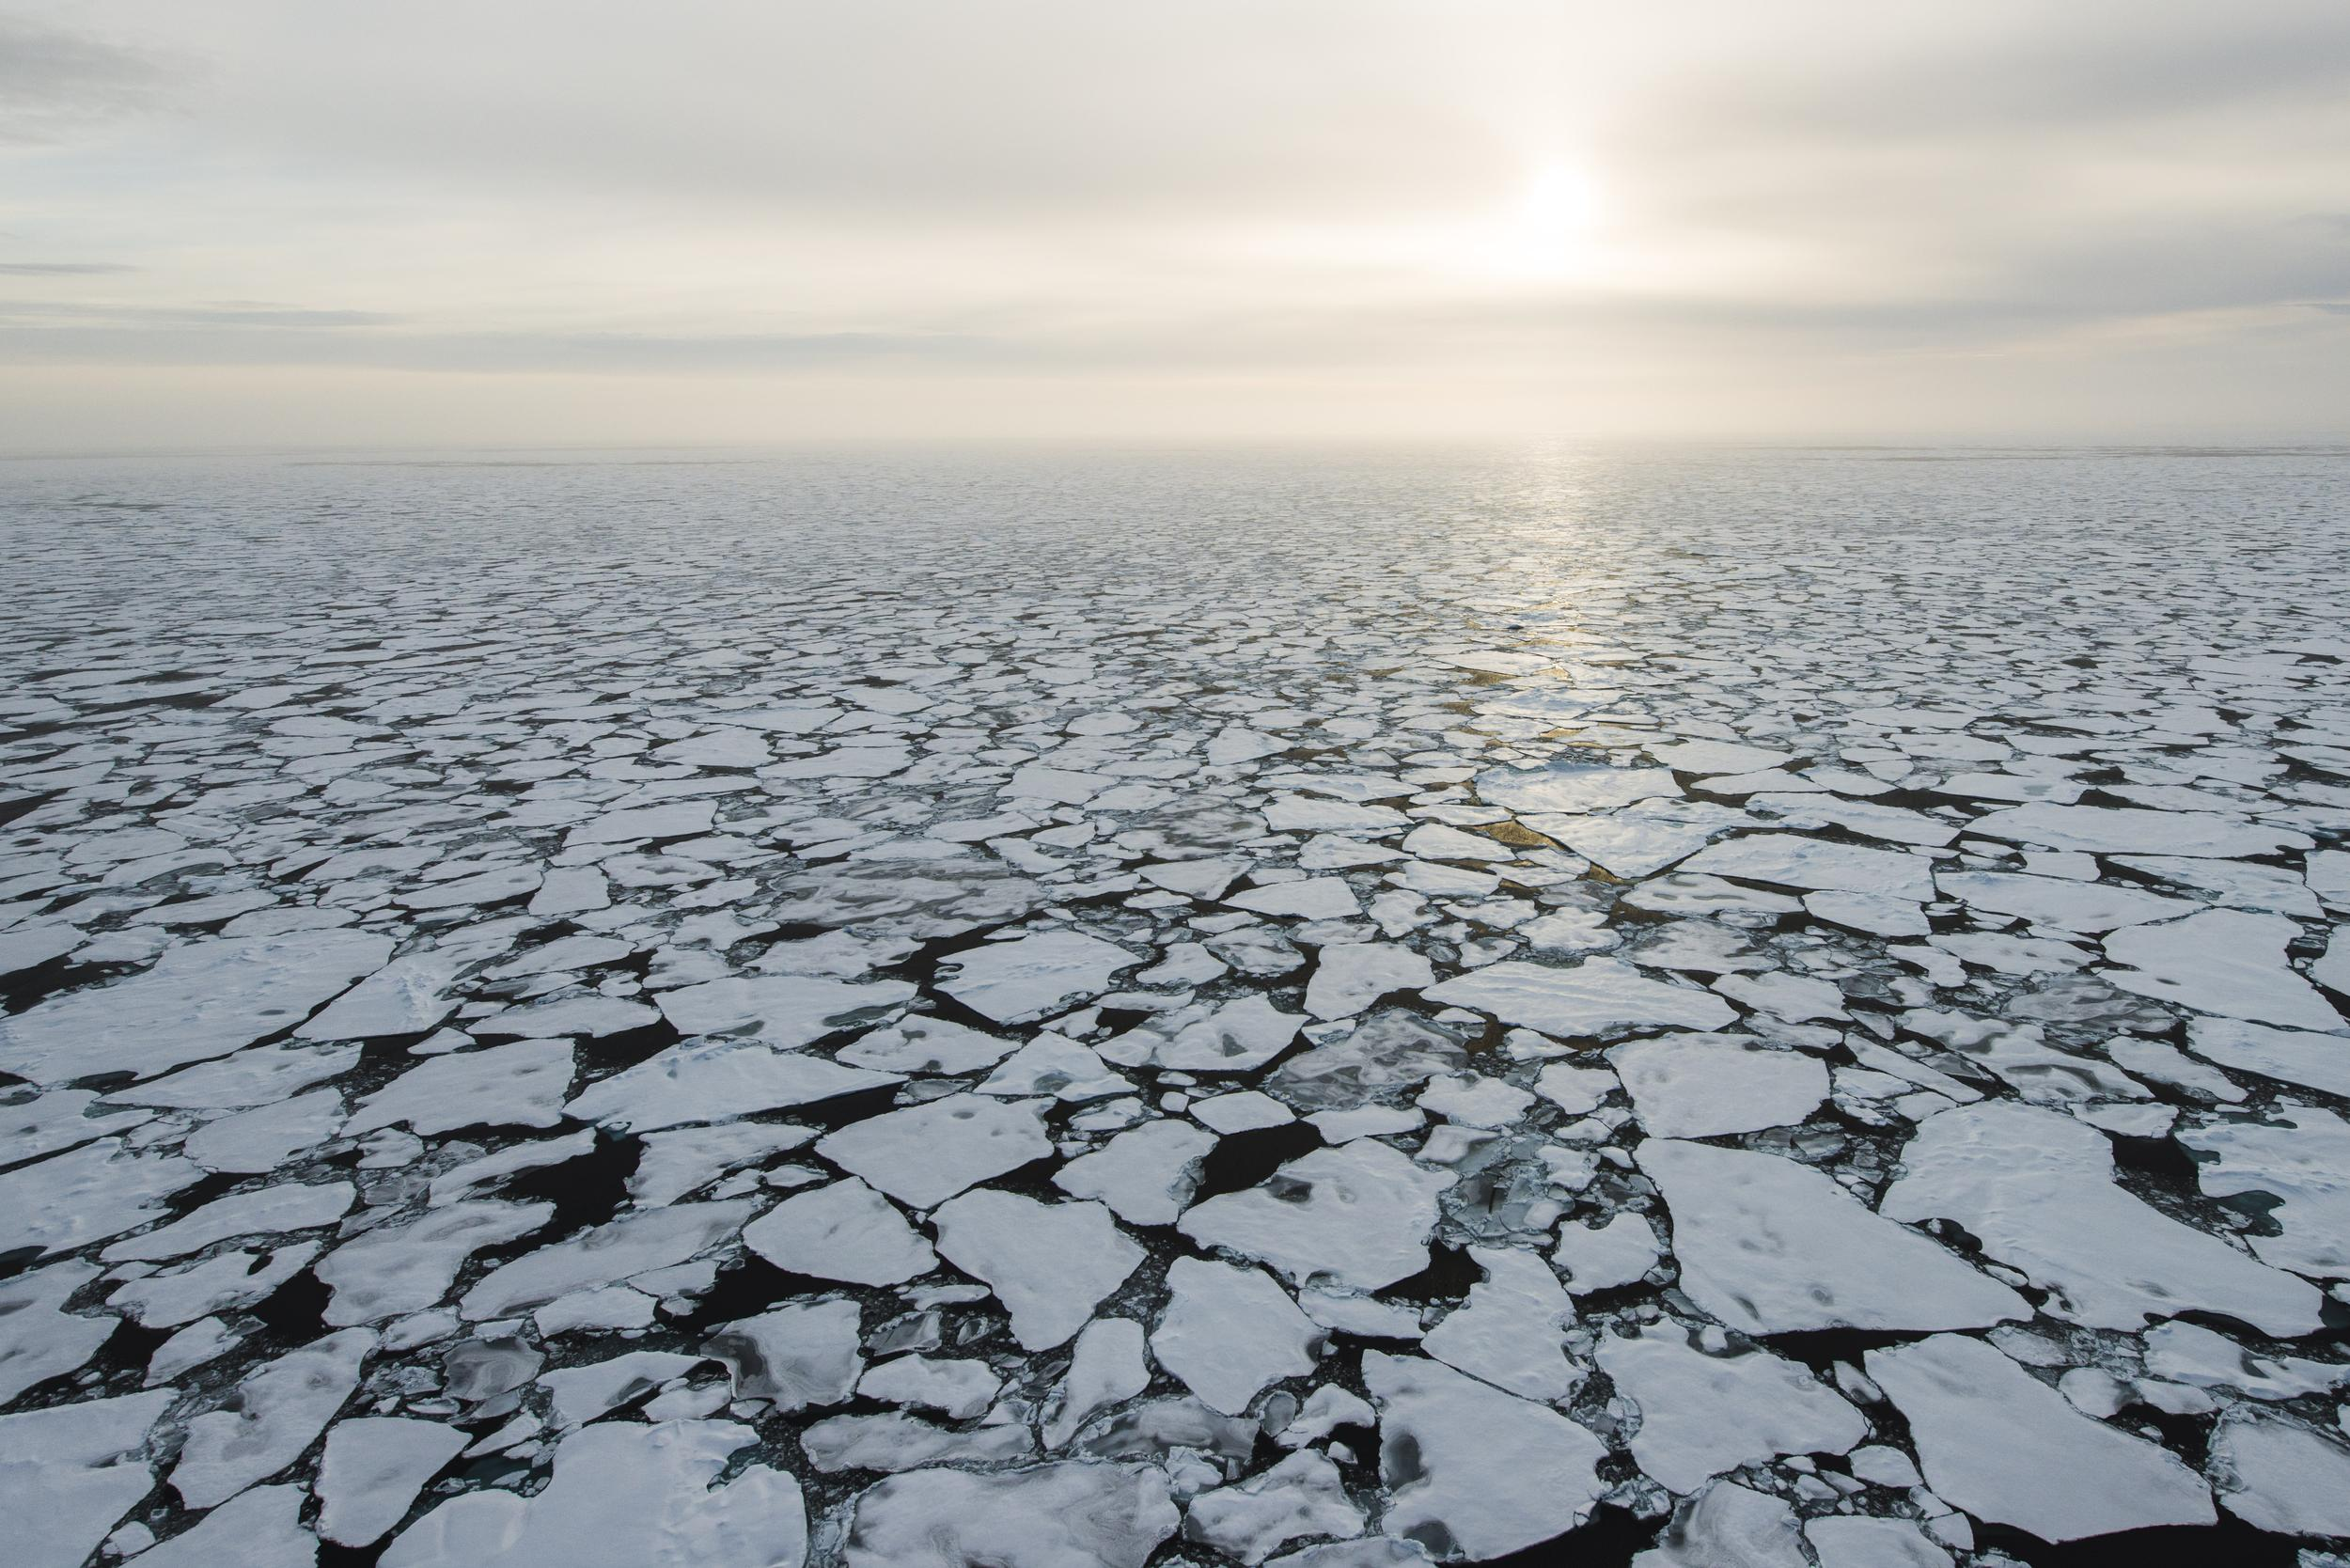 aerial view of cracked sea ice